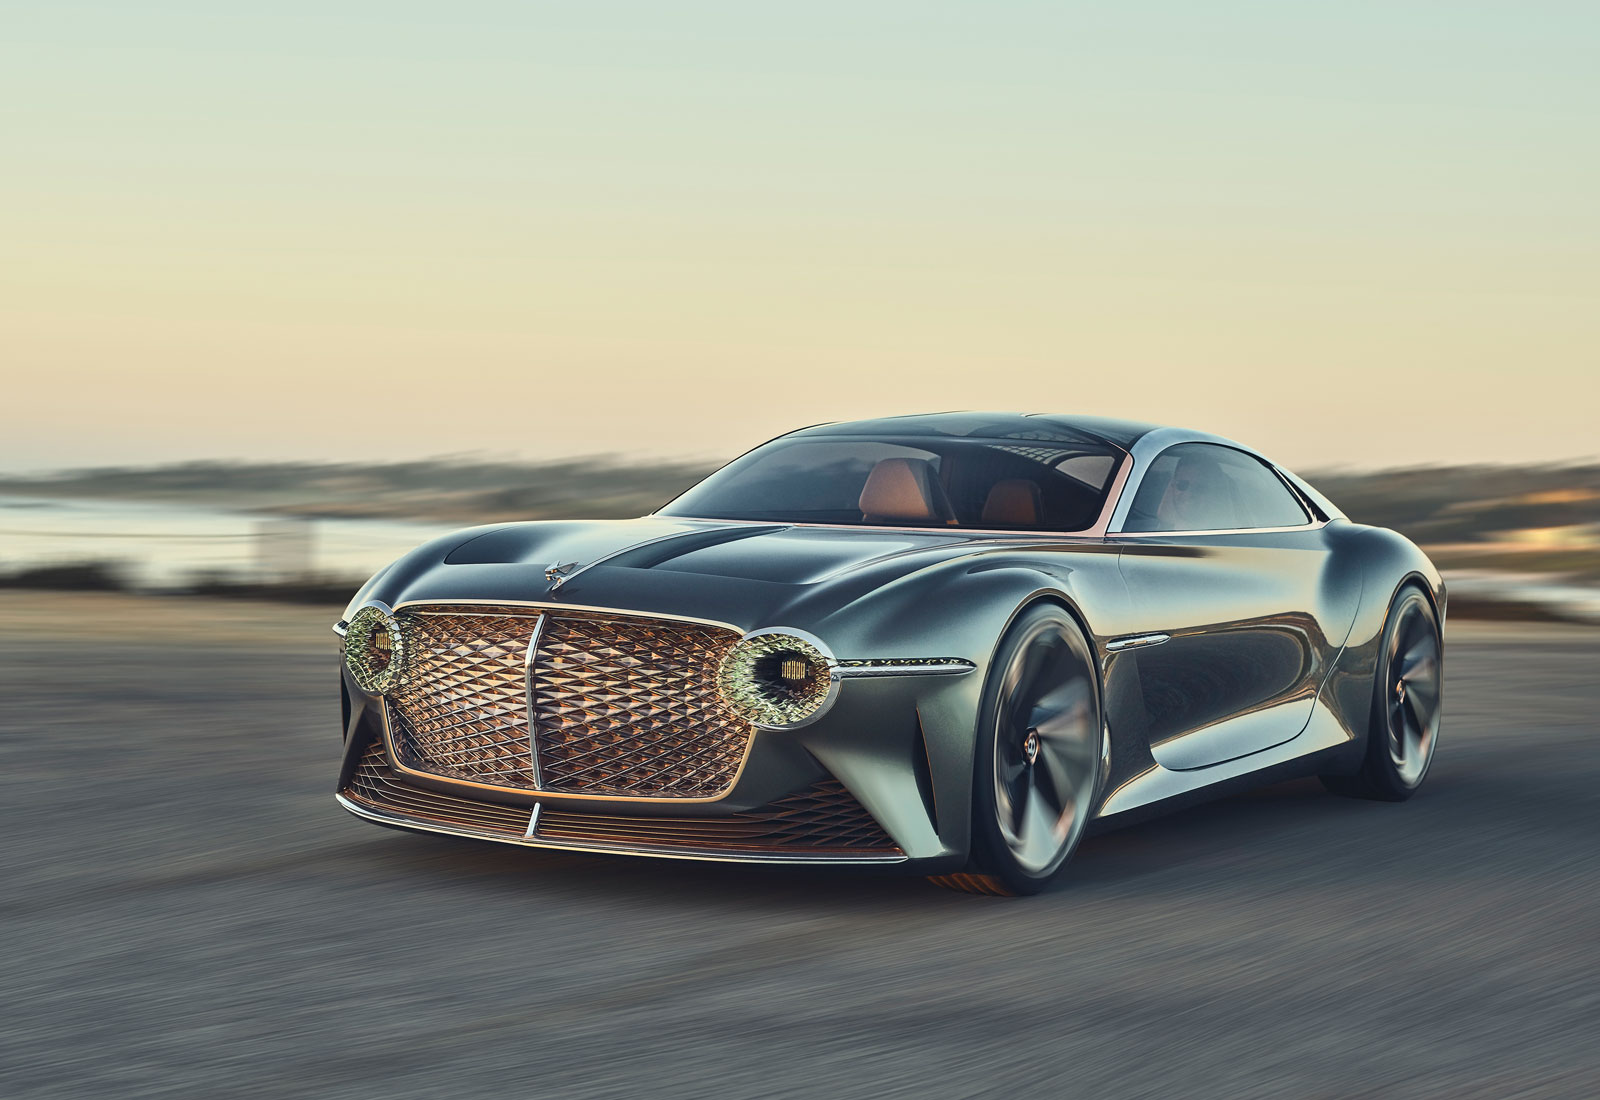 The electric Bentley EXP 100 GT